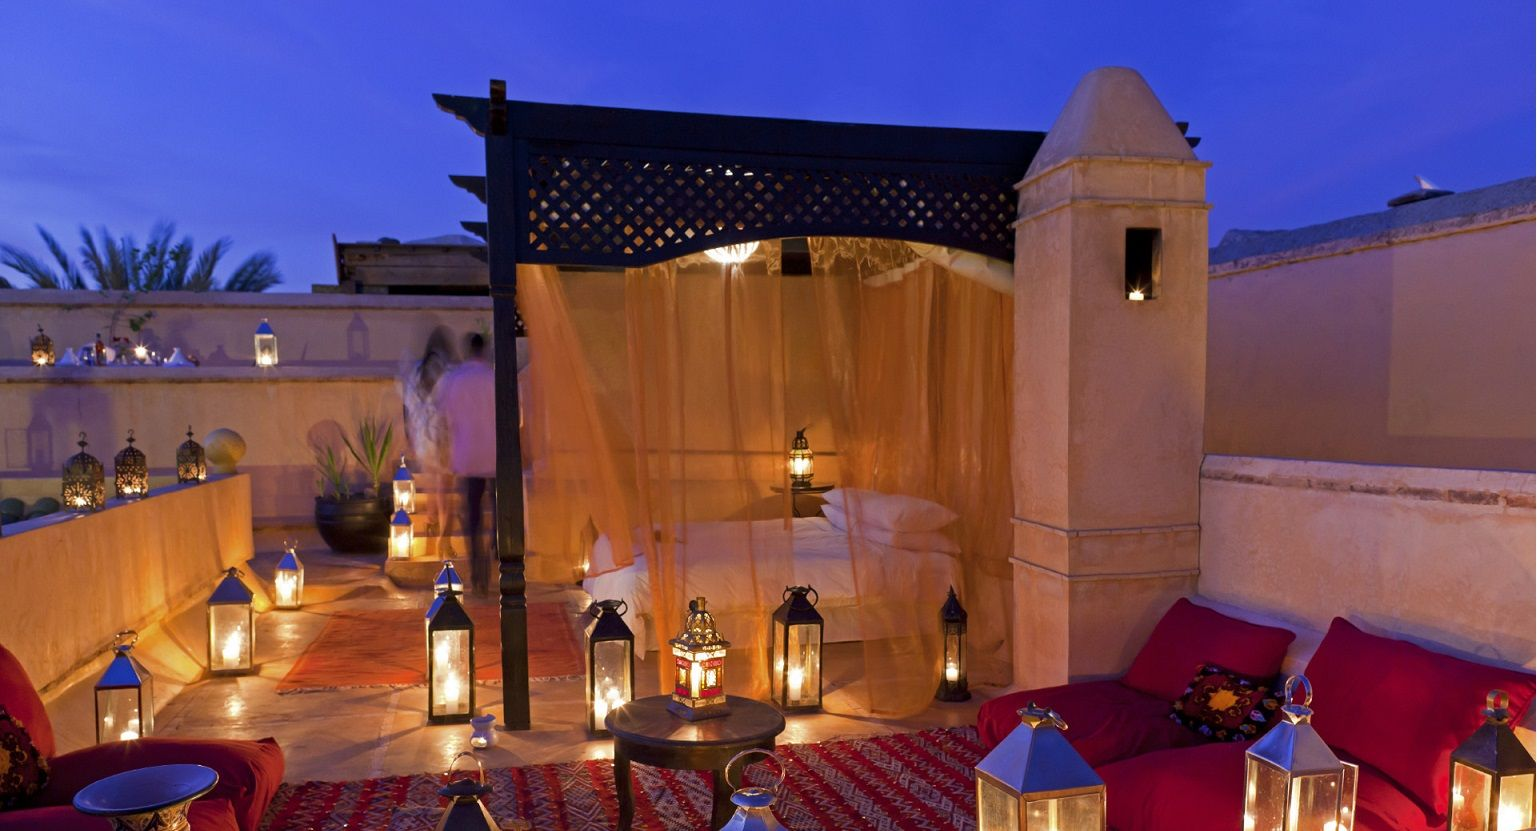 This week at Inspired Luxury Escapes we have a selection of stunning resorts under £500pp.  We recommend the beautiful Angsana Raids in Morocco, four nights from just £289pp - Saving 21%  For more information please call our experienced travel advisors today.